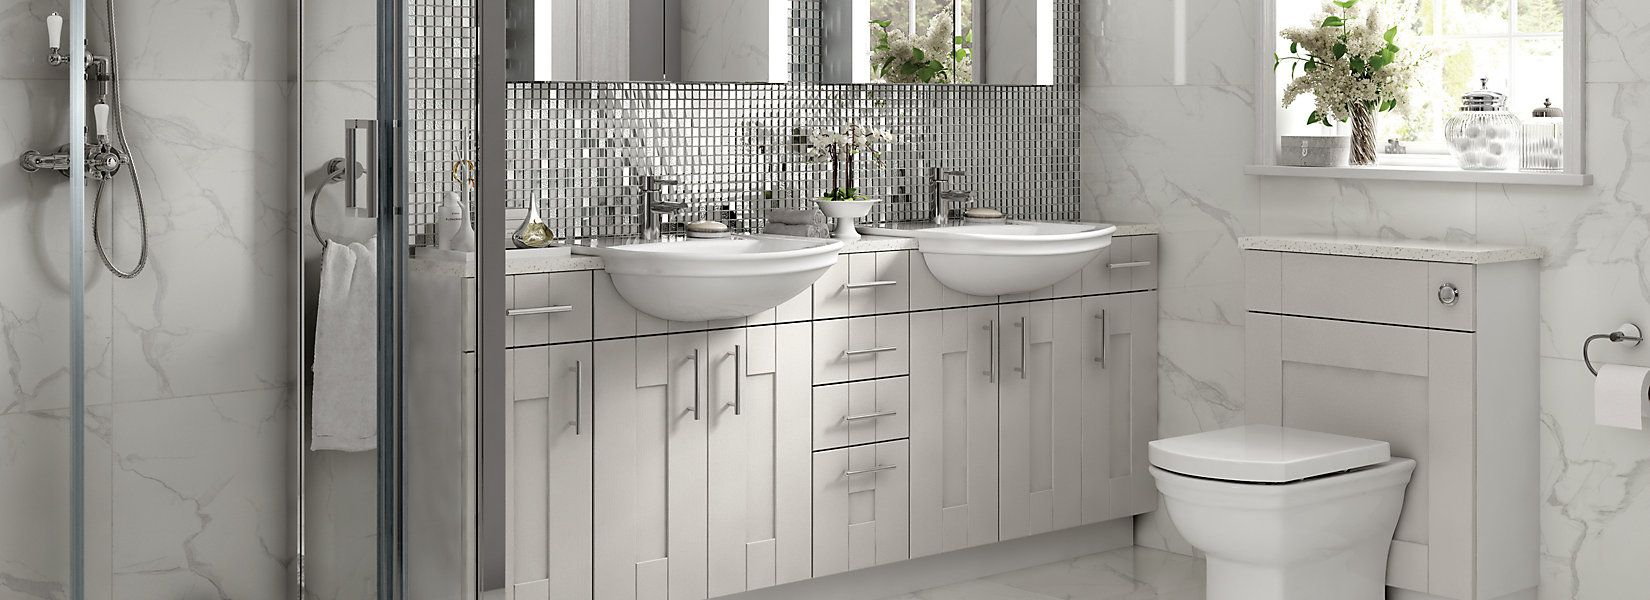 Vermont Fitted Bathroom Furniture Wickes Co Uk In 2020 Fitted Bathroom Fitted Bathroom Furniture Bathroom Furniture